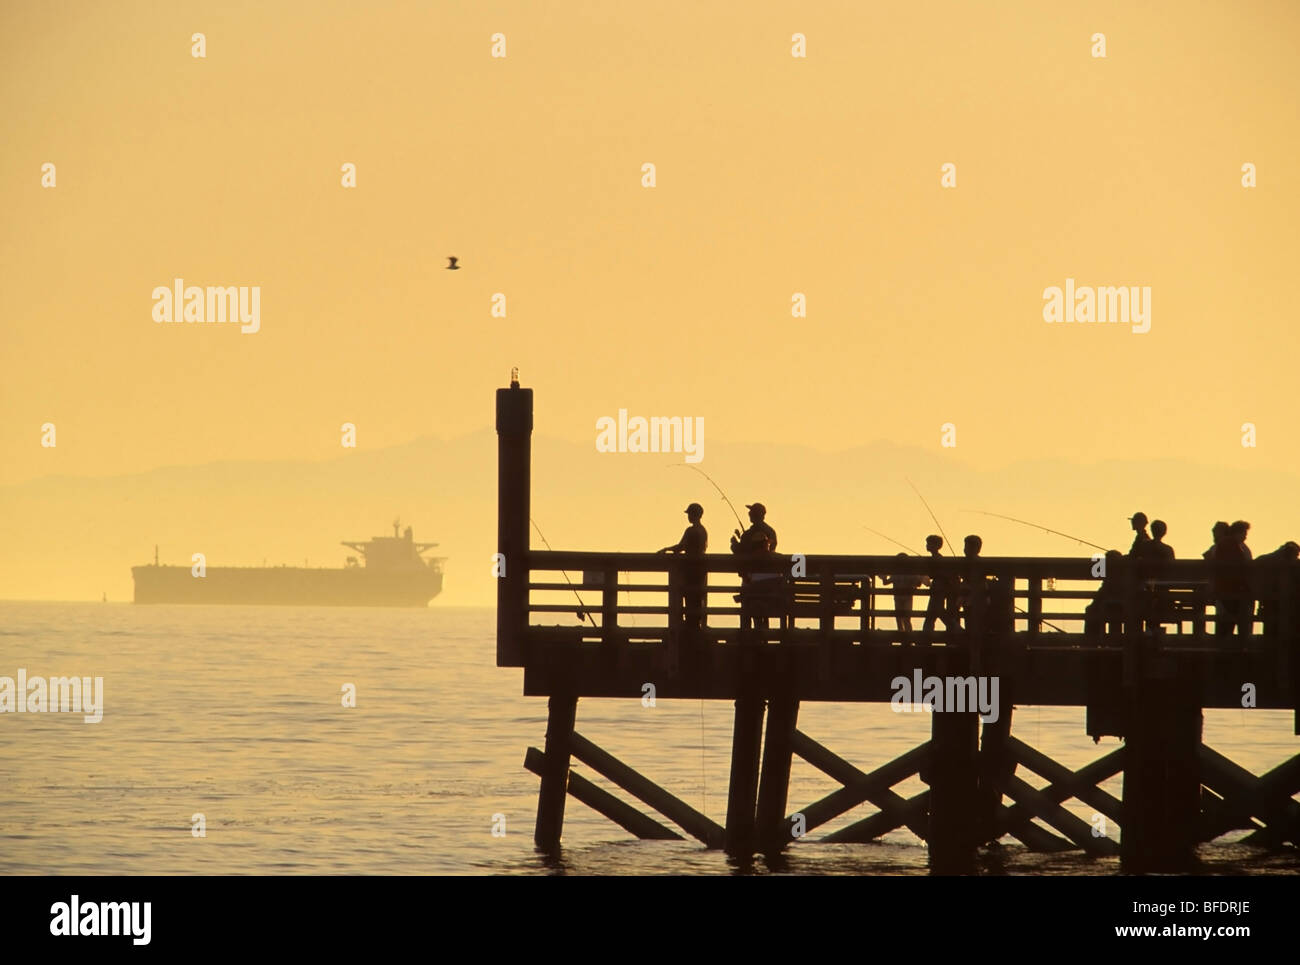 People fishing off dock by Burrard Inlet with freighter in the background, West Vancouver, British Columbia, Canada Stock Photo